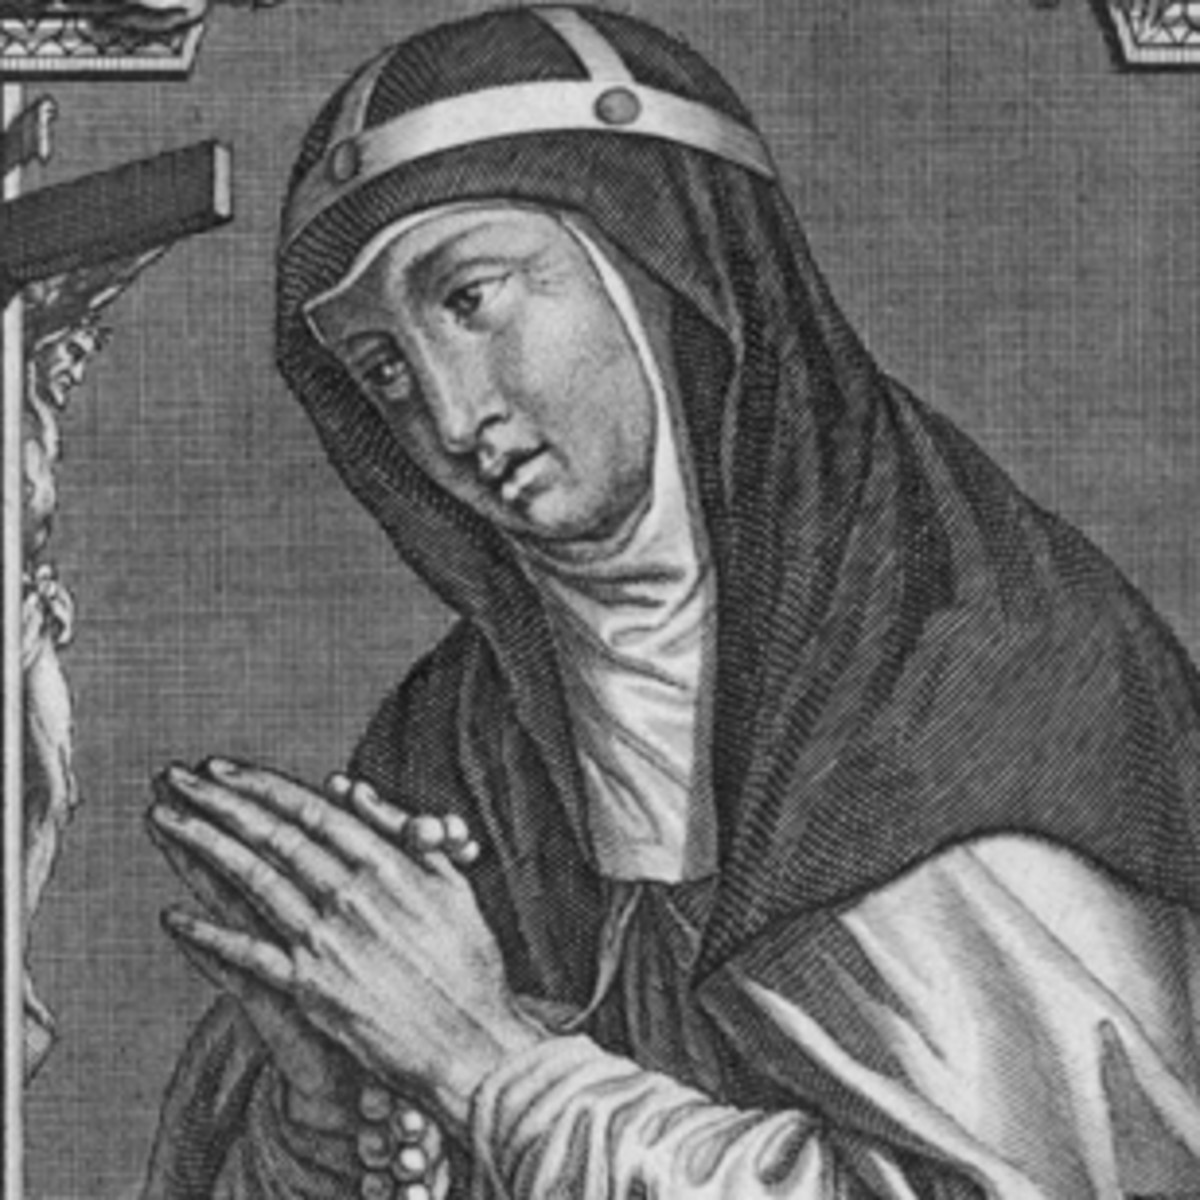 St. Brigid (Image: Mansell/The LIFE Picture Collection/Getty Images)